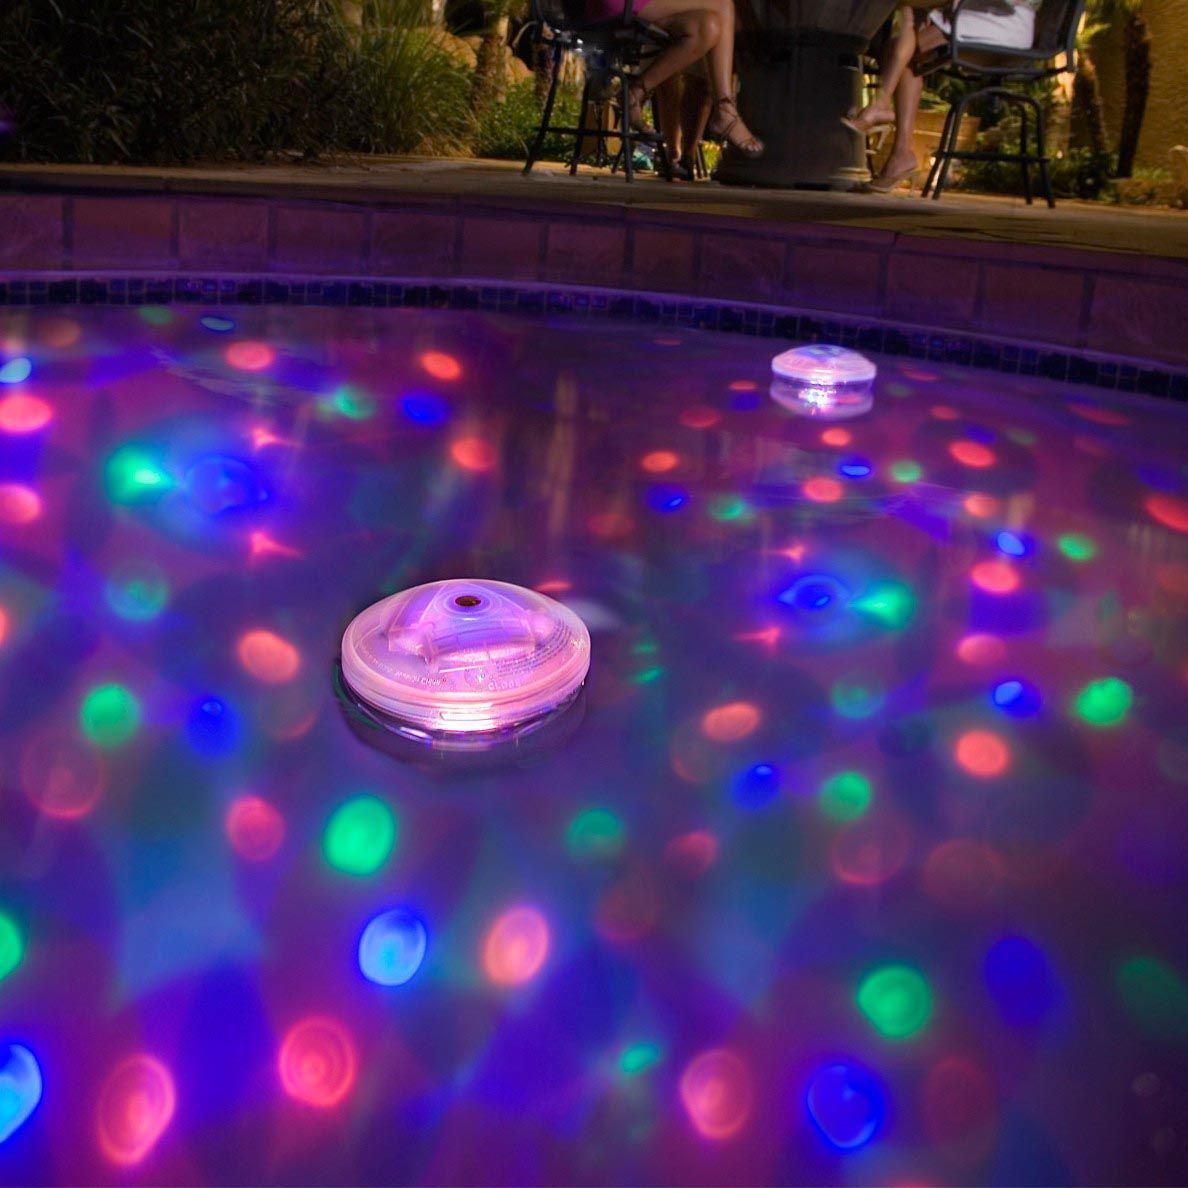 Pool Fountains And Lights Fountain Design Ideas Underwater Pool Light Floating Pool Lights Swimming Pool Hot Tub